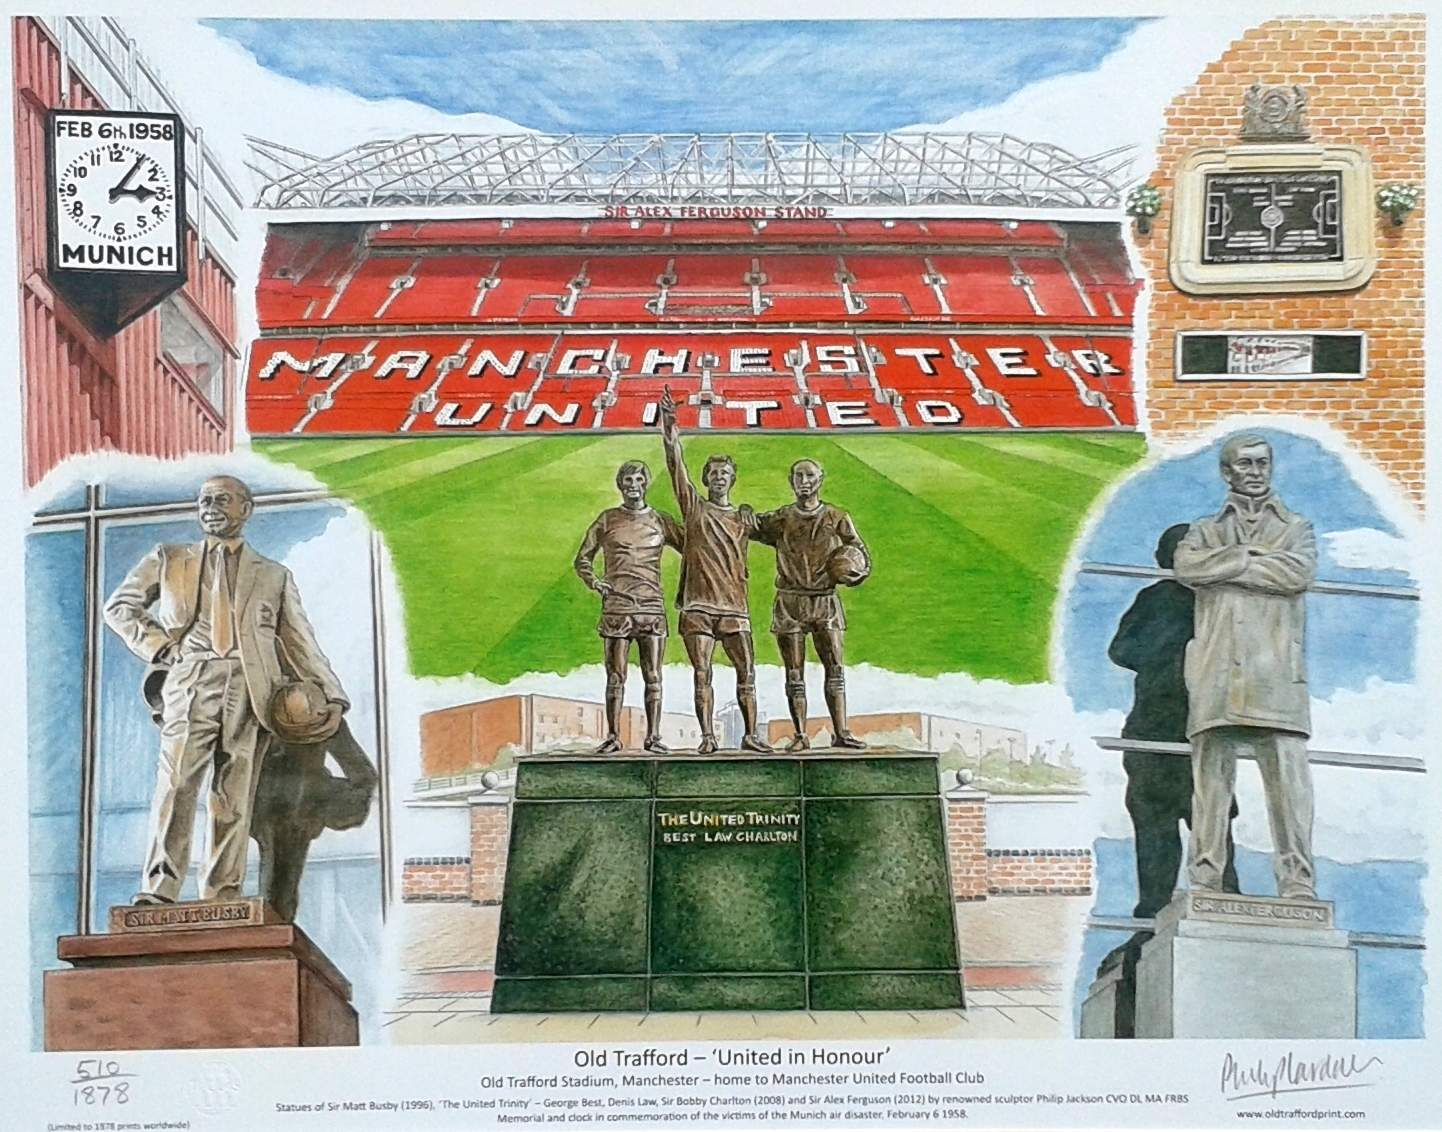 Premium number Manchester United 'United in Honour' fine art print - unframed